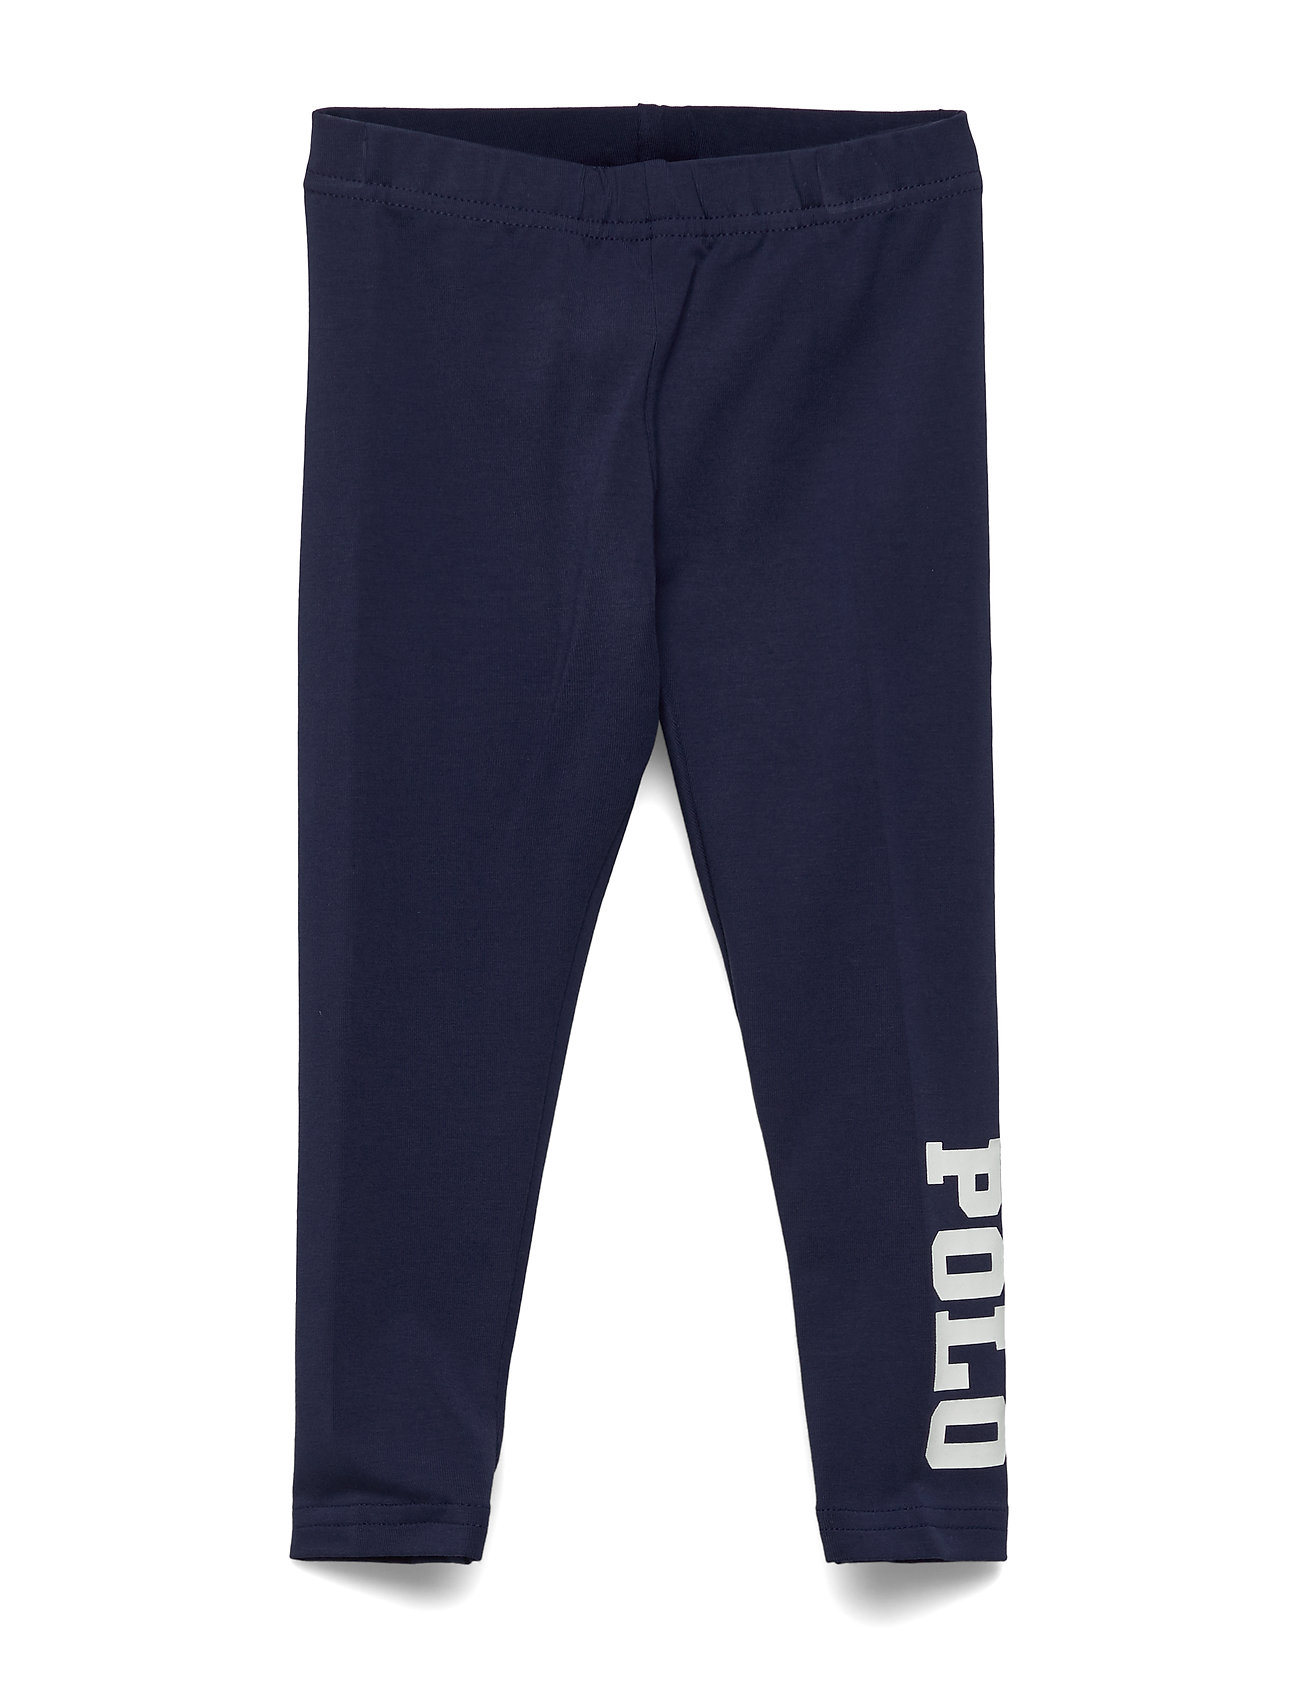 Ralph Lauren Kids Polo Stretch Jersey Legging - FRENCH NAVY